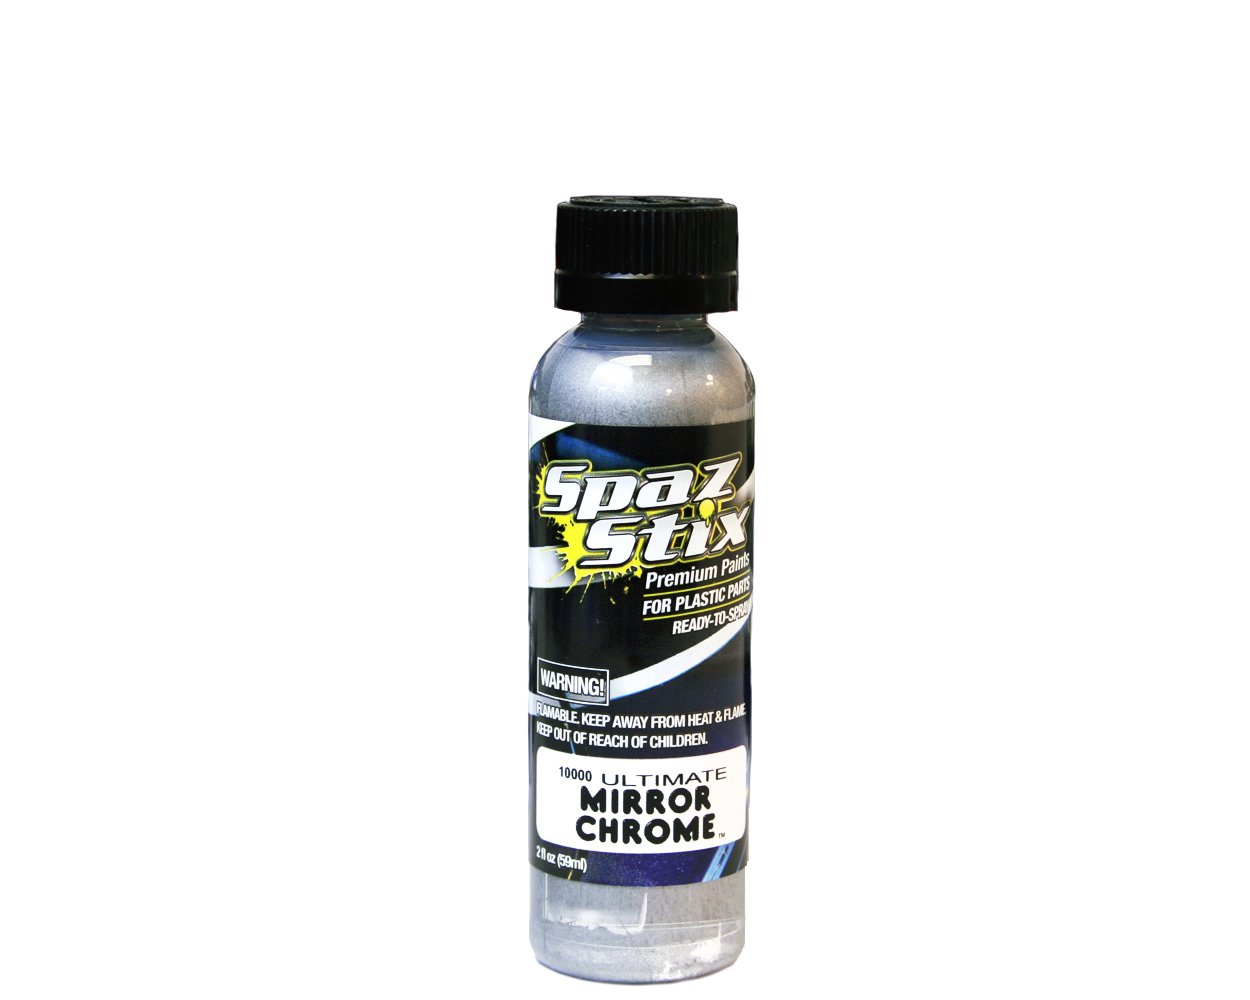 Ultimate Mirror Chrome Airbrush Paint 2oz